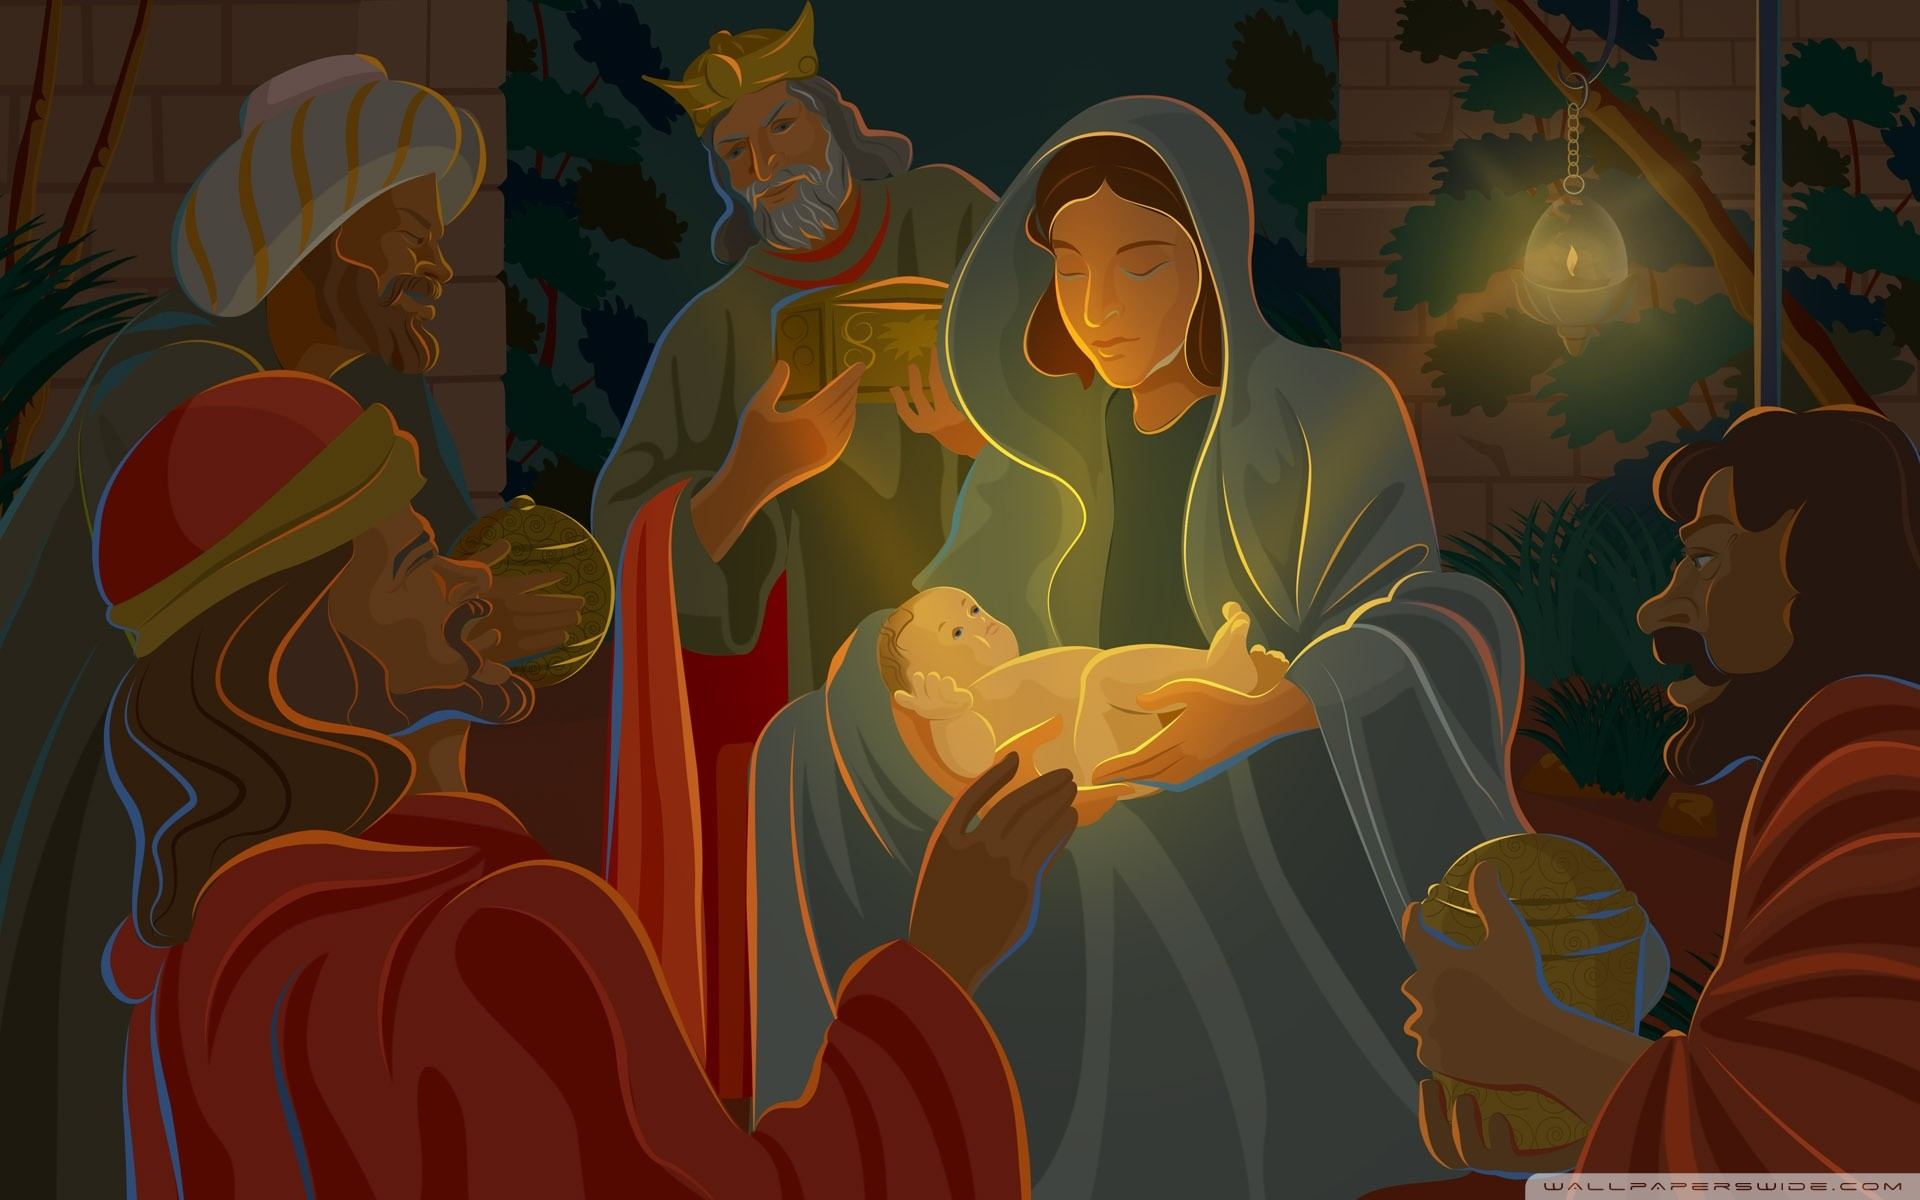 Christmas Jesus Wallpaper.Christmas Baby Jesus Images Hd 3000 Inspirational Quotes